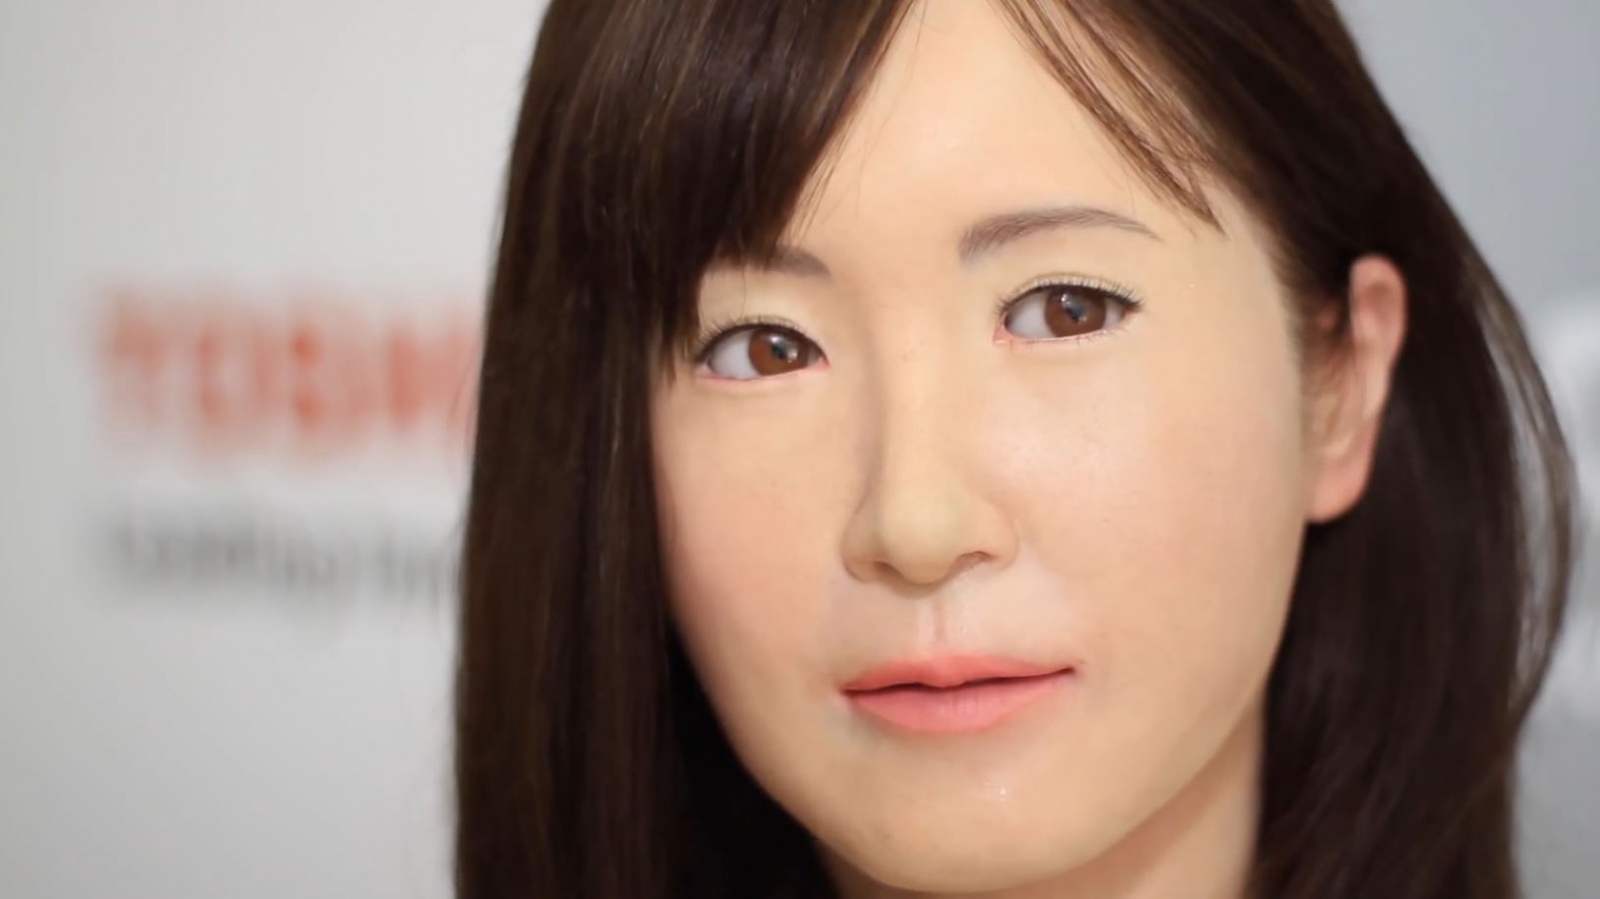 Robot geisha unveiled by Toshiba at CES